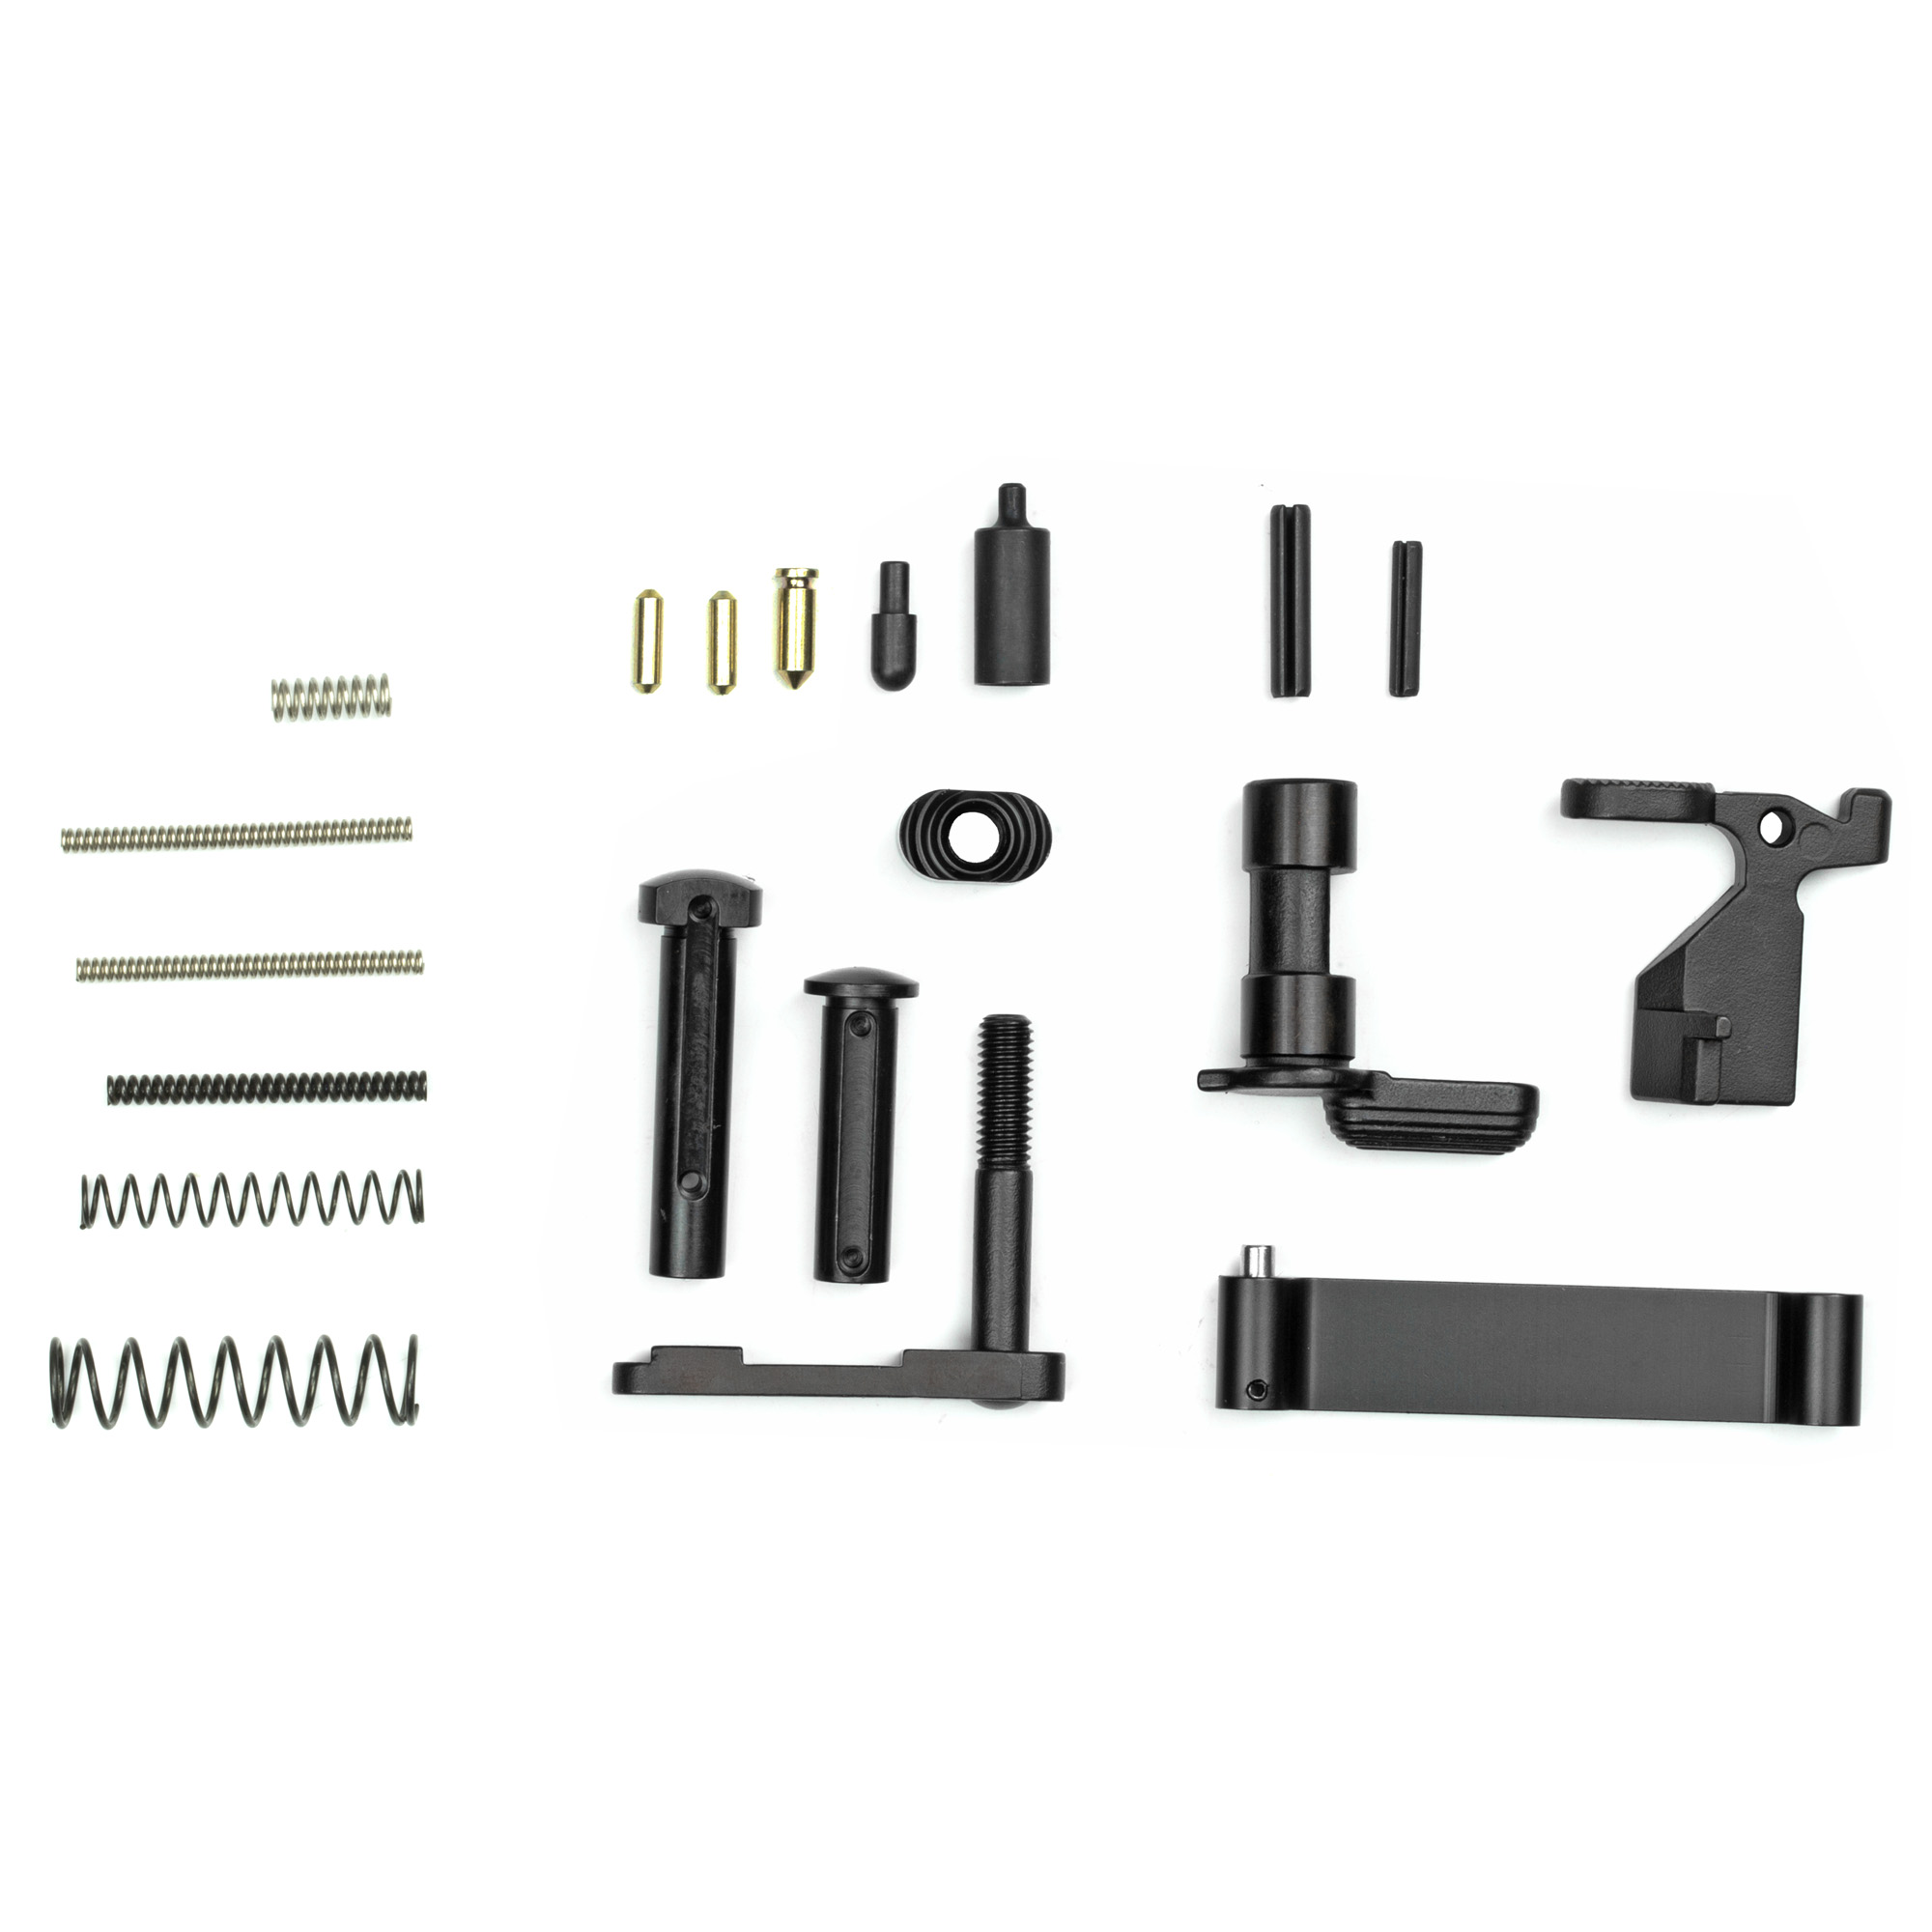 """This lower receiver parts kit for AR-15 is a great addition to your AR15 build. From amateur gun builder to seasoned expert gun smith"""" this lower parts kit is for you. NOTE: Fire control group and grip NOT included. Kit contains the following: 1.Bolt Catch 2. Bolt Catch Plunger 3. Bolt Catch Spring 4. Bolt Catch Roll Pin 5. Mag Release 6. Mag Release Button 7. Mag Release Spring 8. Buffer Retainer Spring 9. Safety 10. Buffer Retainer 11. Safety Detent Spring 12. Safety Detent 13. Trigger Guard 14. Trigger Guard Roll Pin 15. Takedown Detent Springs 16. Takedown Detents 17. Takedown Pins. All parts meet or exceed MIL SPEC"""